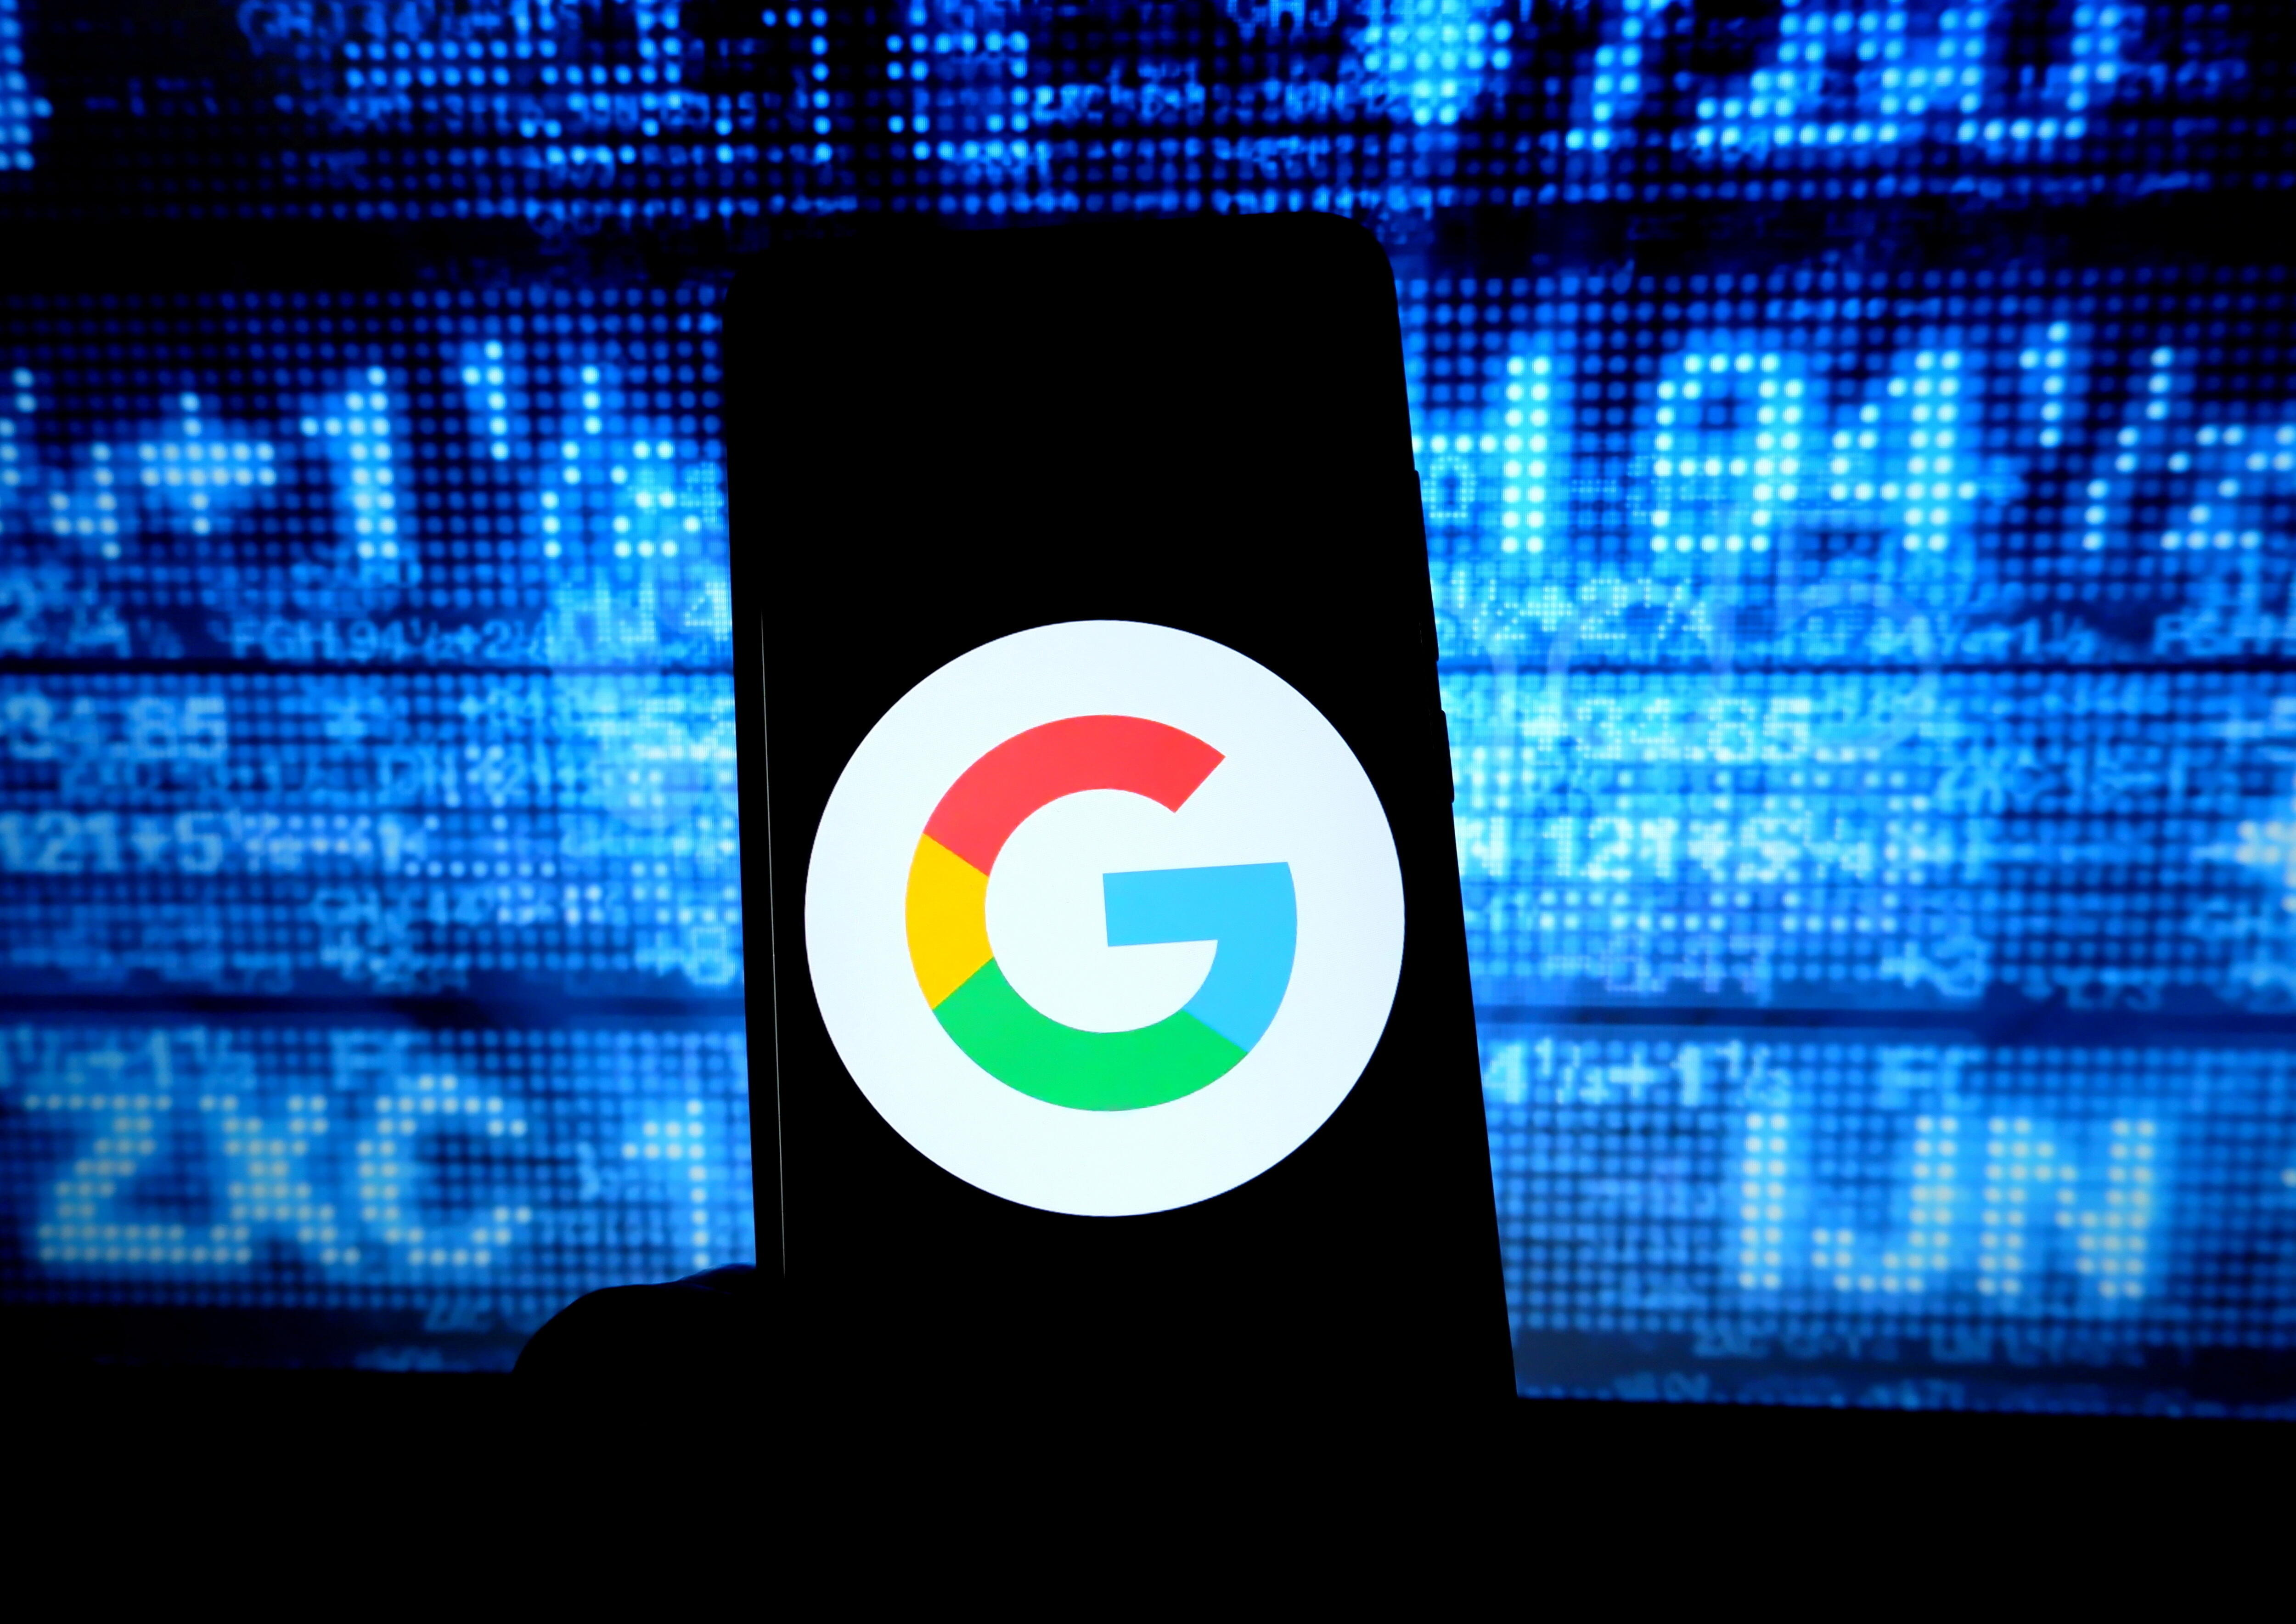 Google is giving data to police based on search keywords, court docs show -  CNET